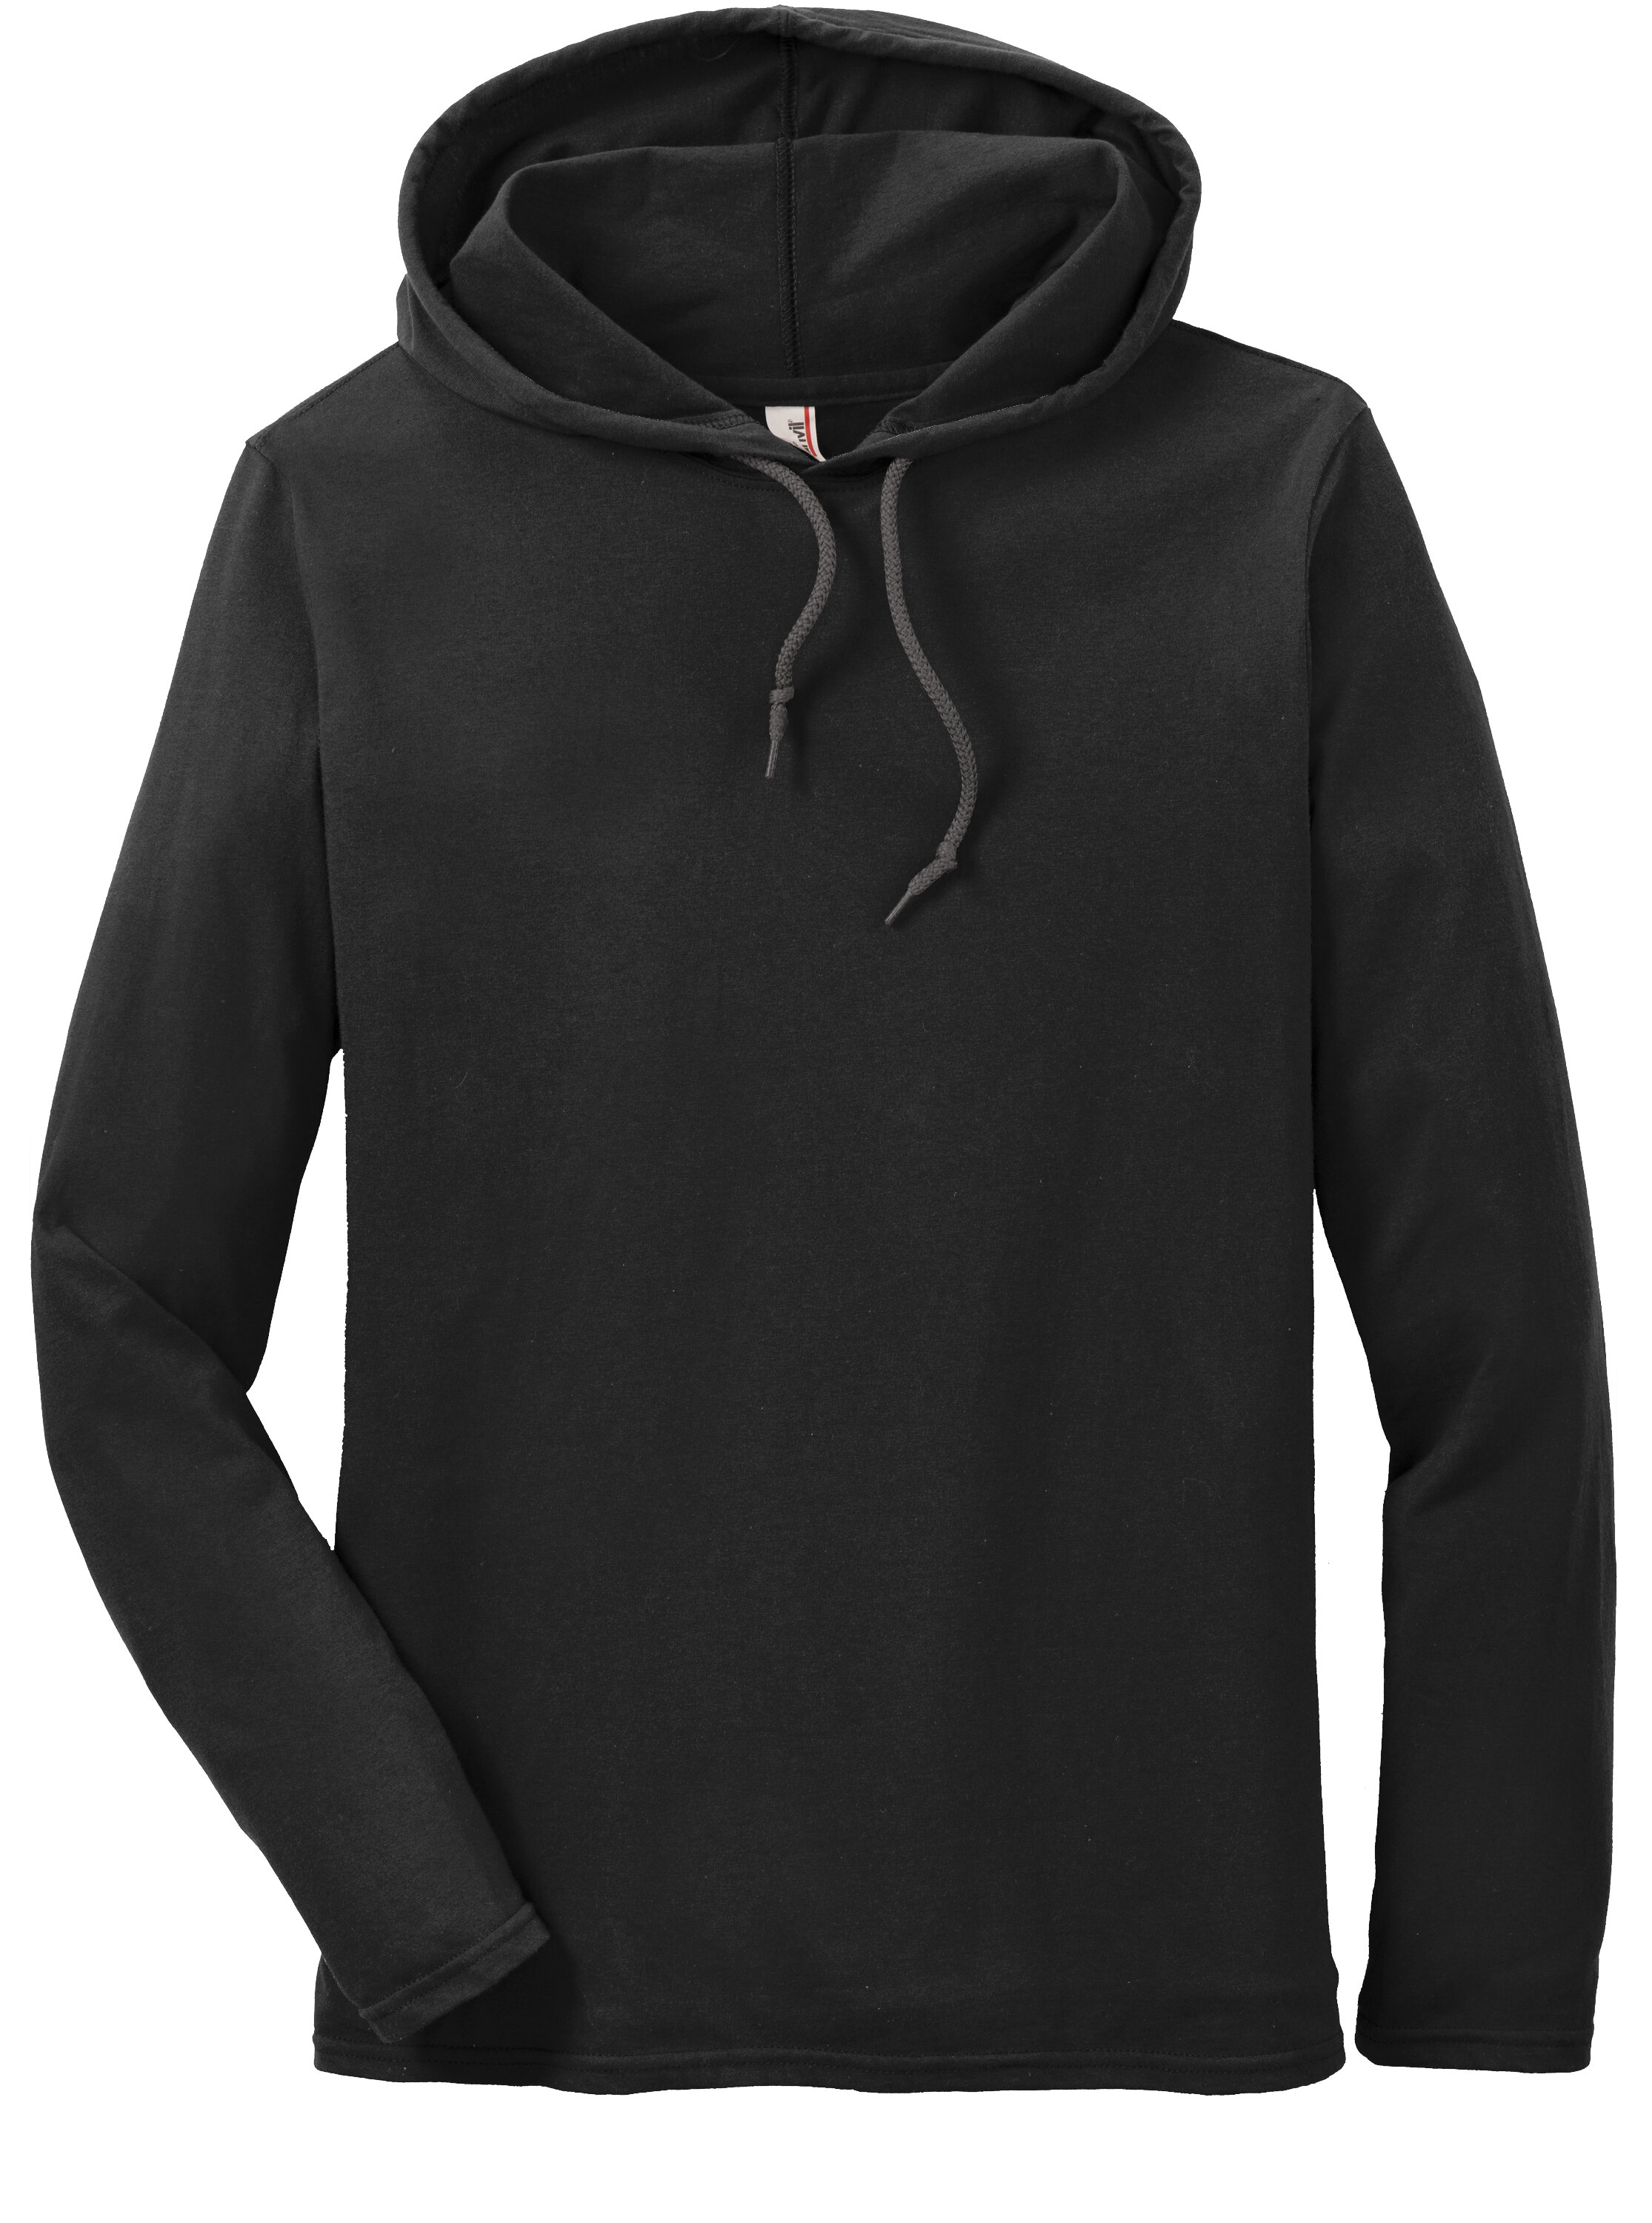 Anvil_987_Black_Dark_Grey_Mens_Ring_Spun_100_Cotton_Long_Sleeve_Hooded_T-Shirt_Hoodie